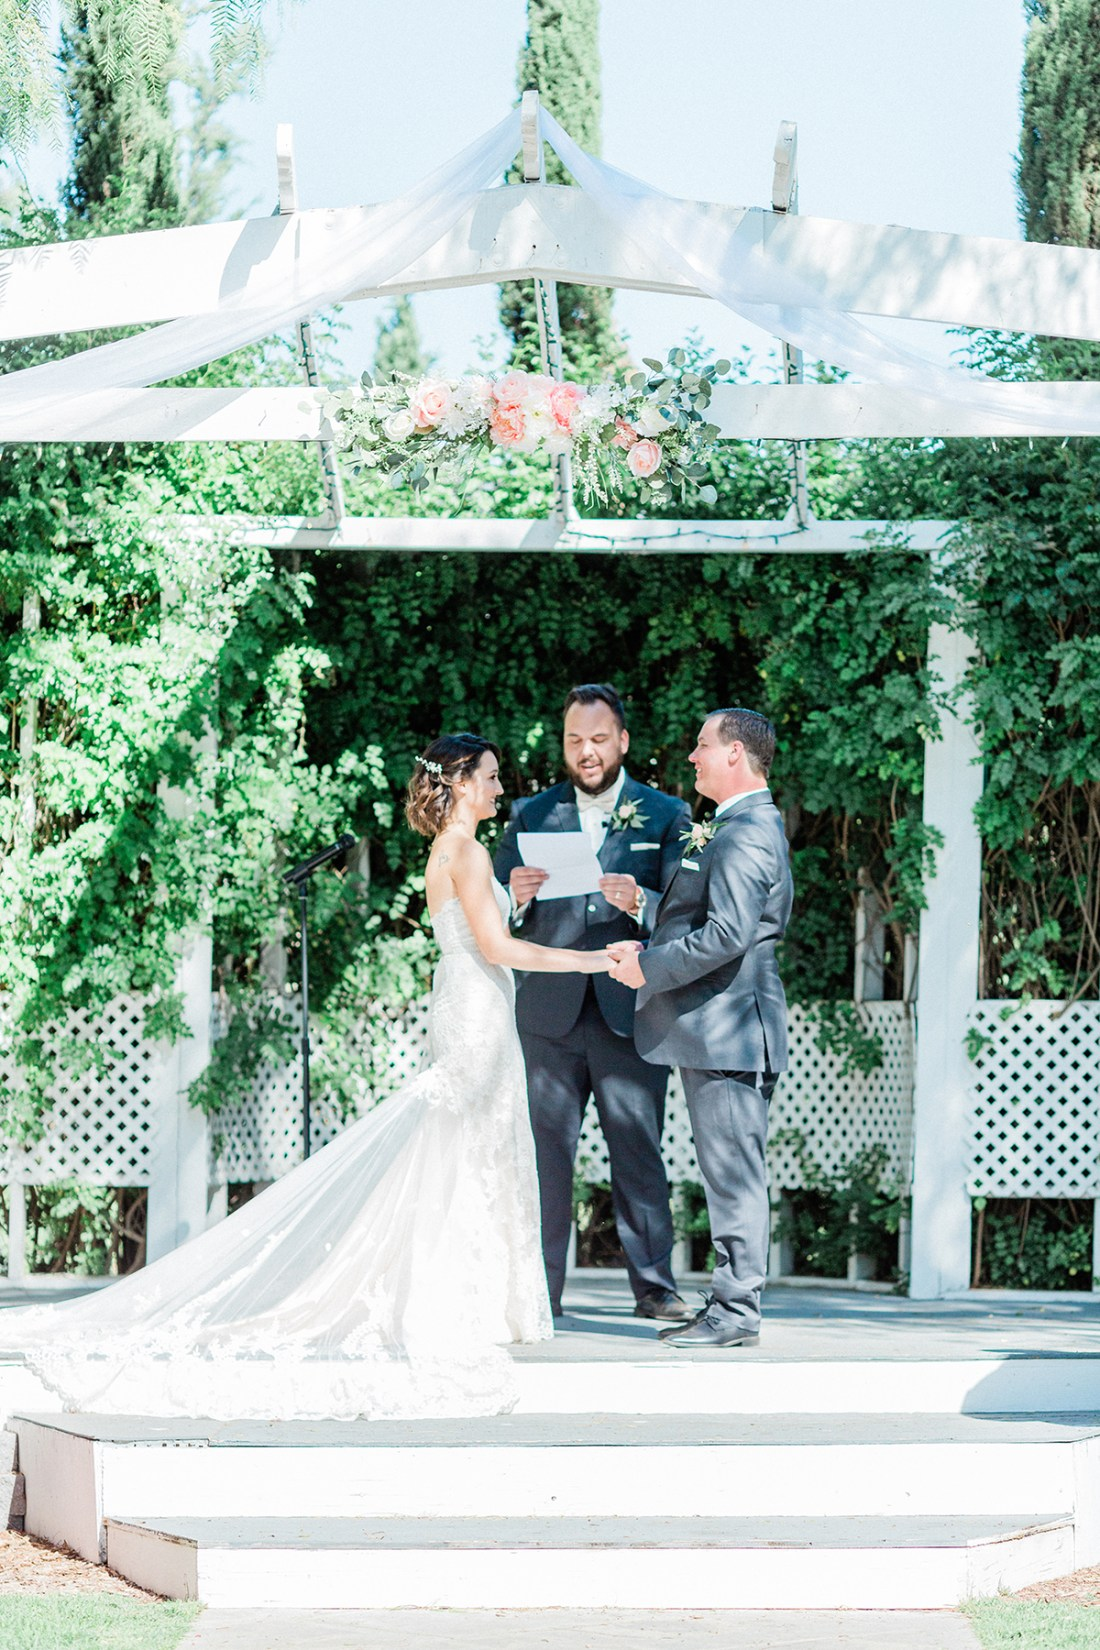 Our Wedding Ceremony at Abbott Manor in Temecula, Calf. | A Good Hue